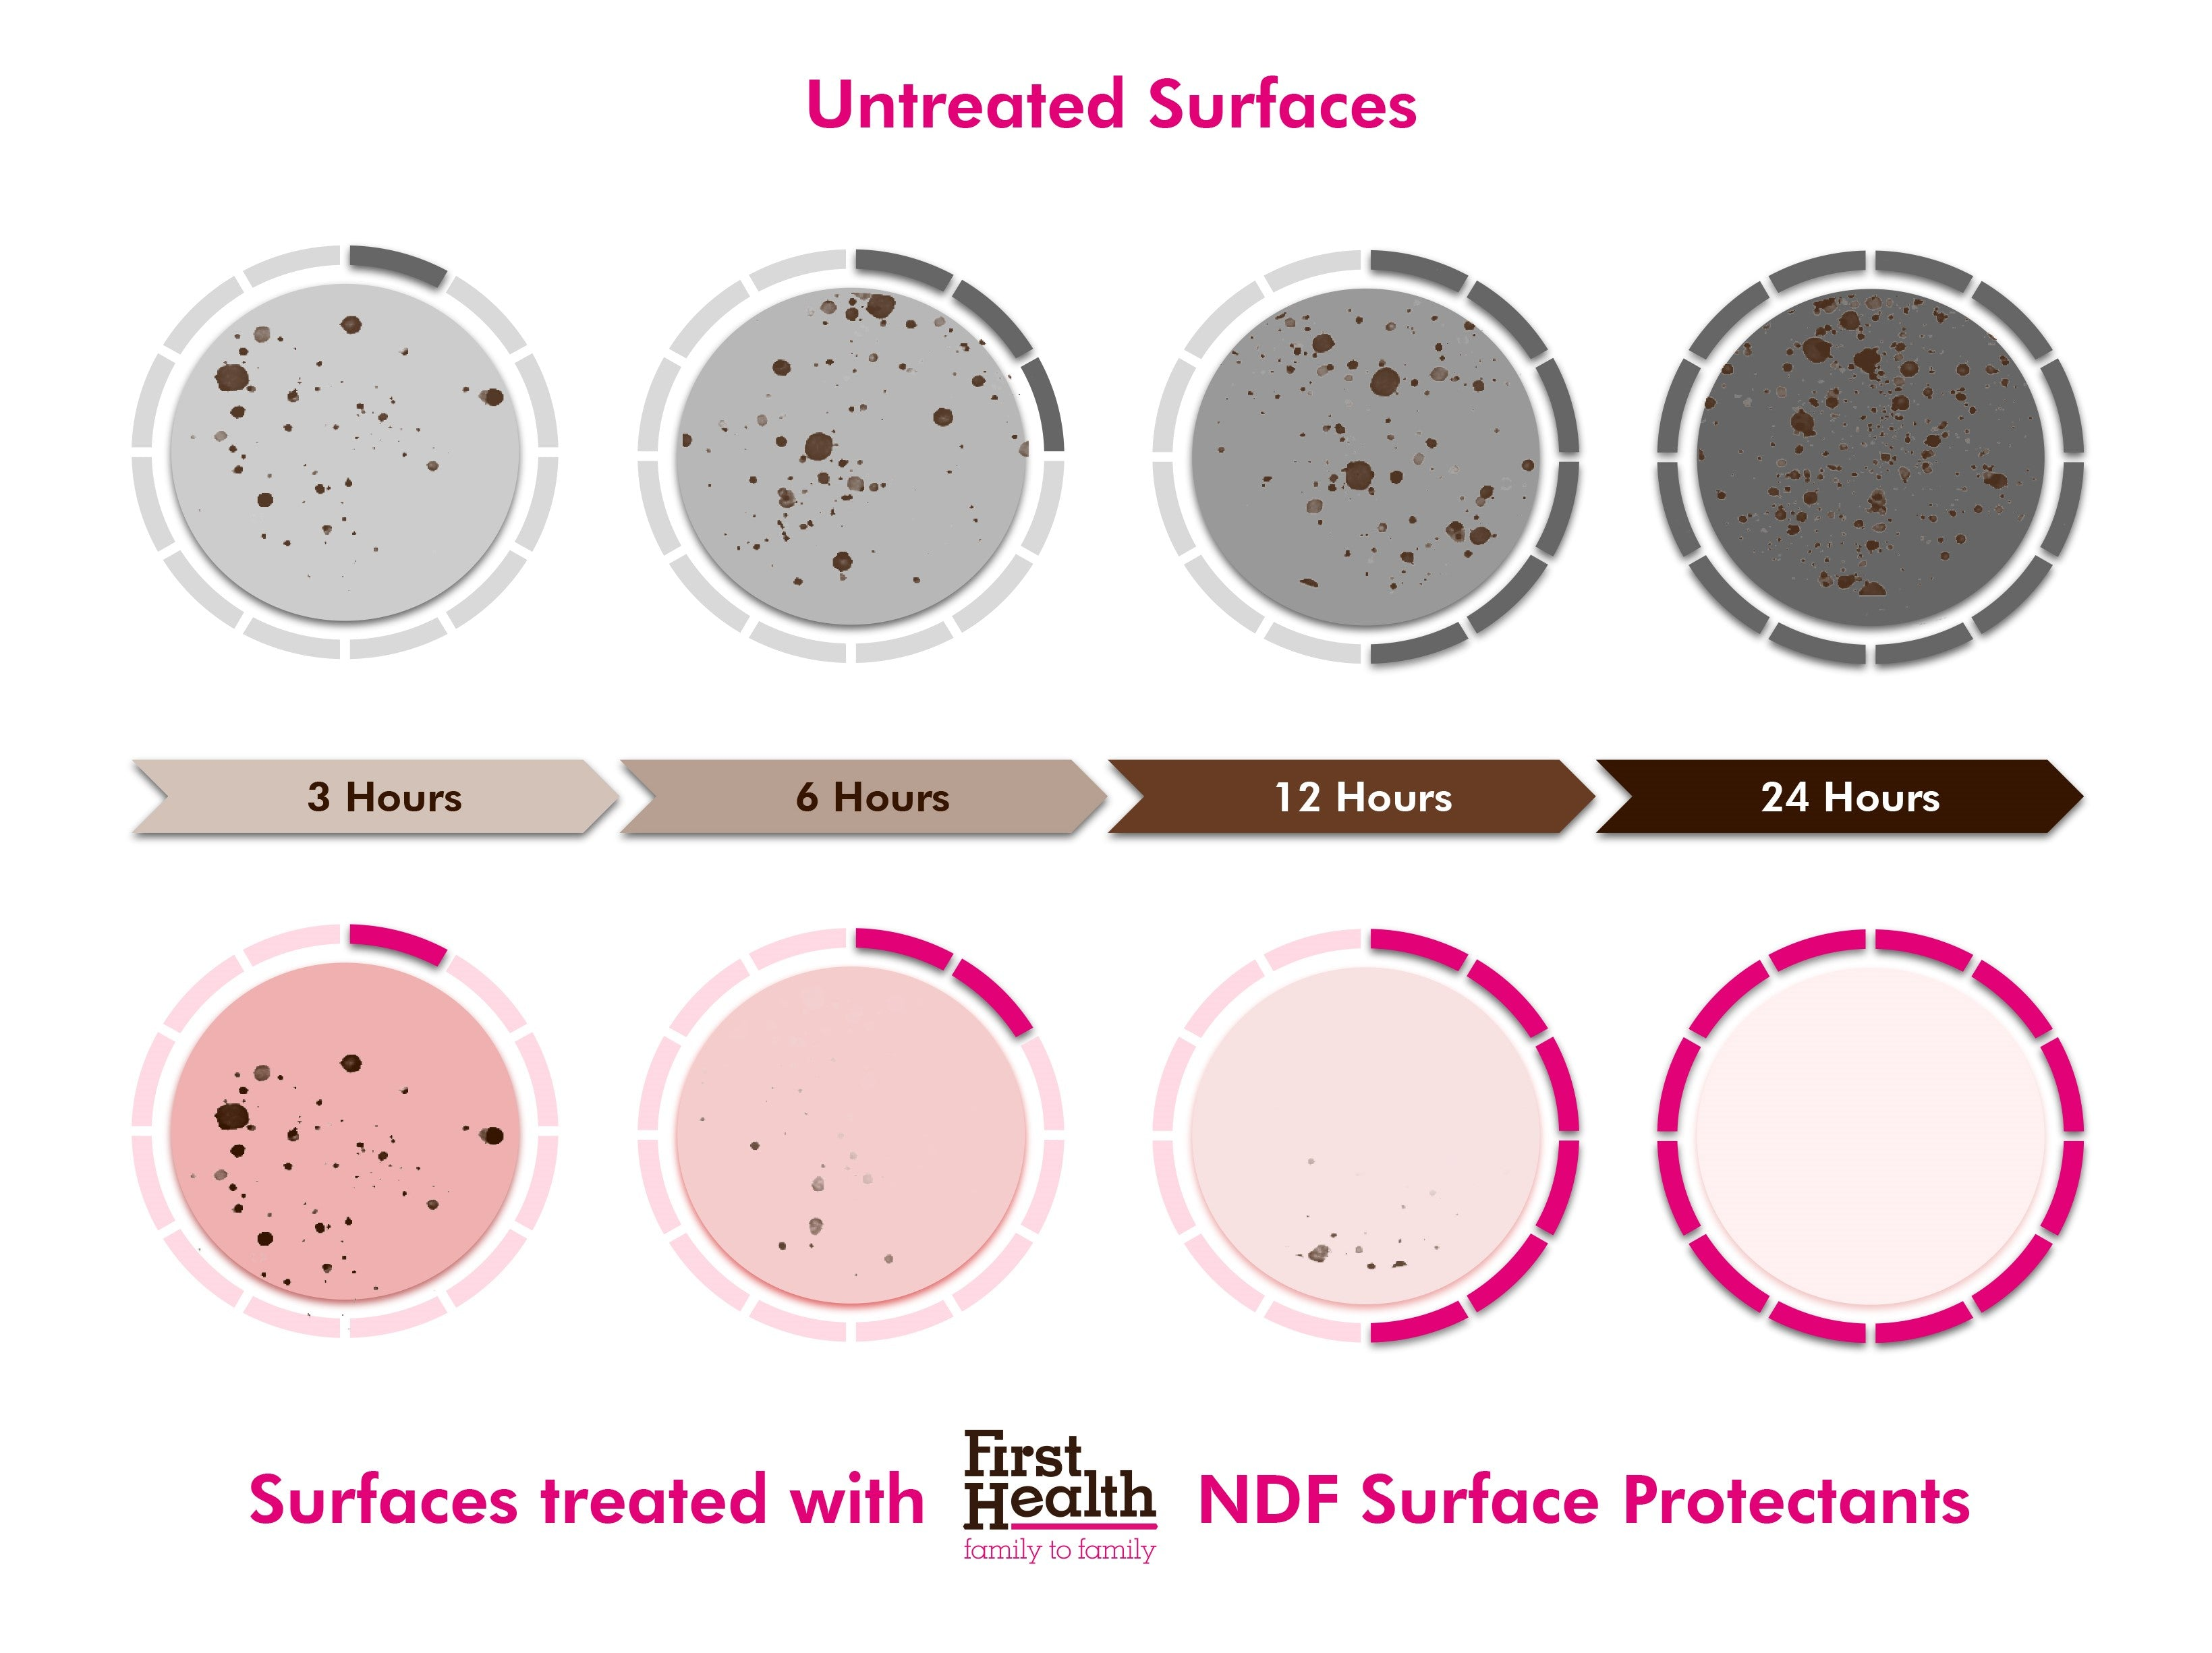 First Health's range of surface protectants build active protective layers that are effective against 99.99% of germs, bacteria and viruses for up to 30 days.